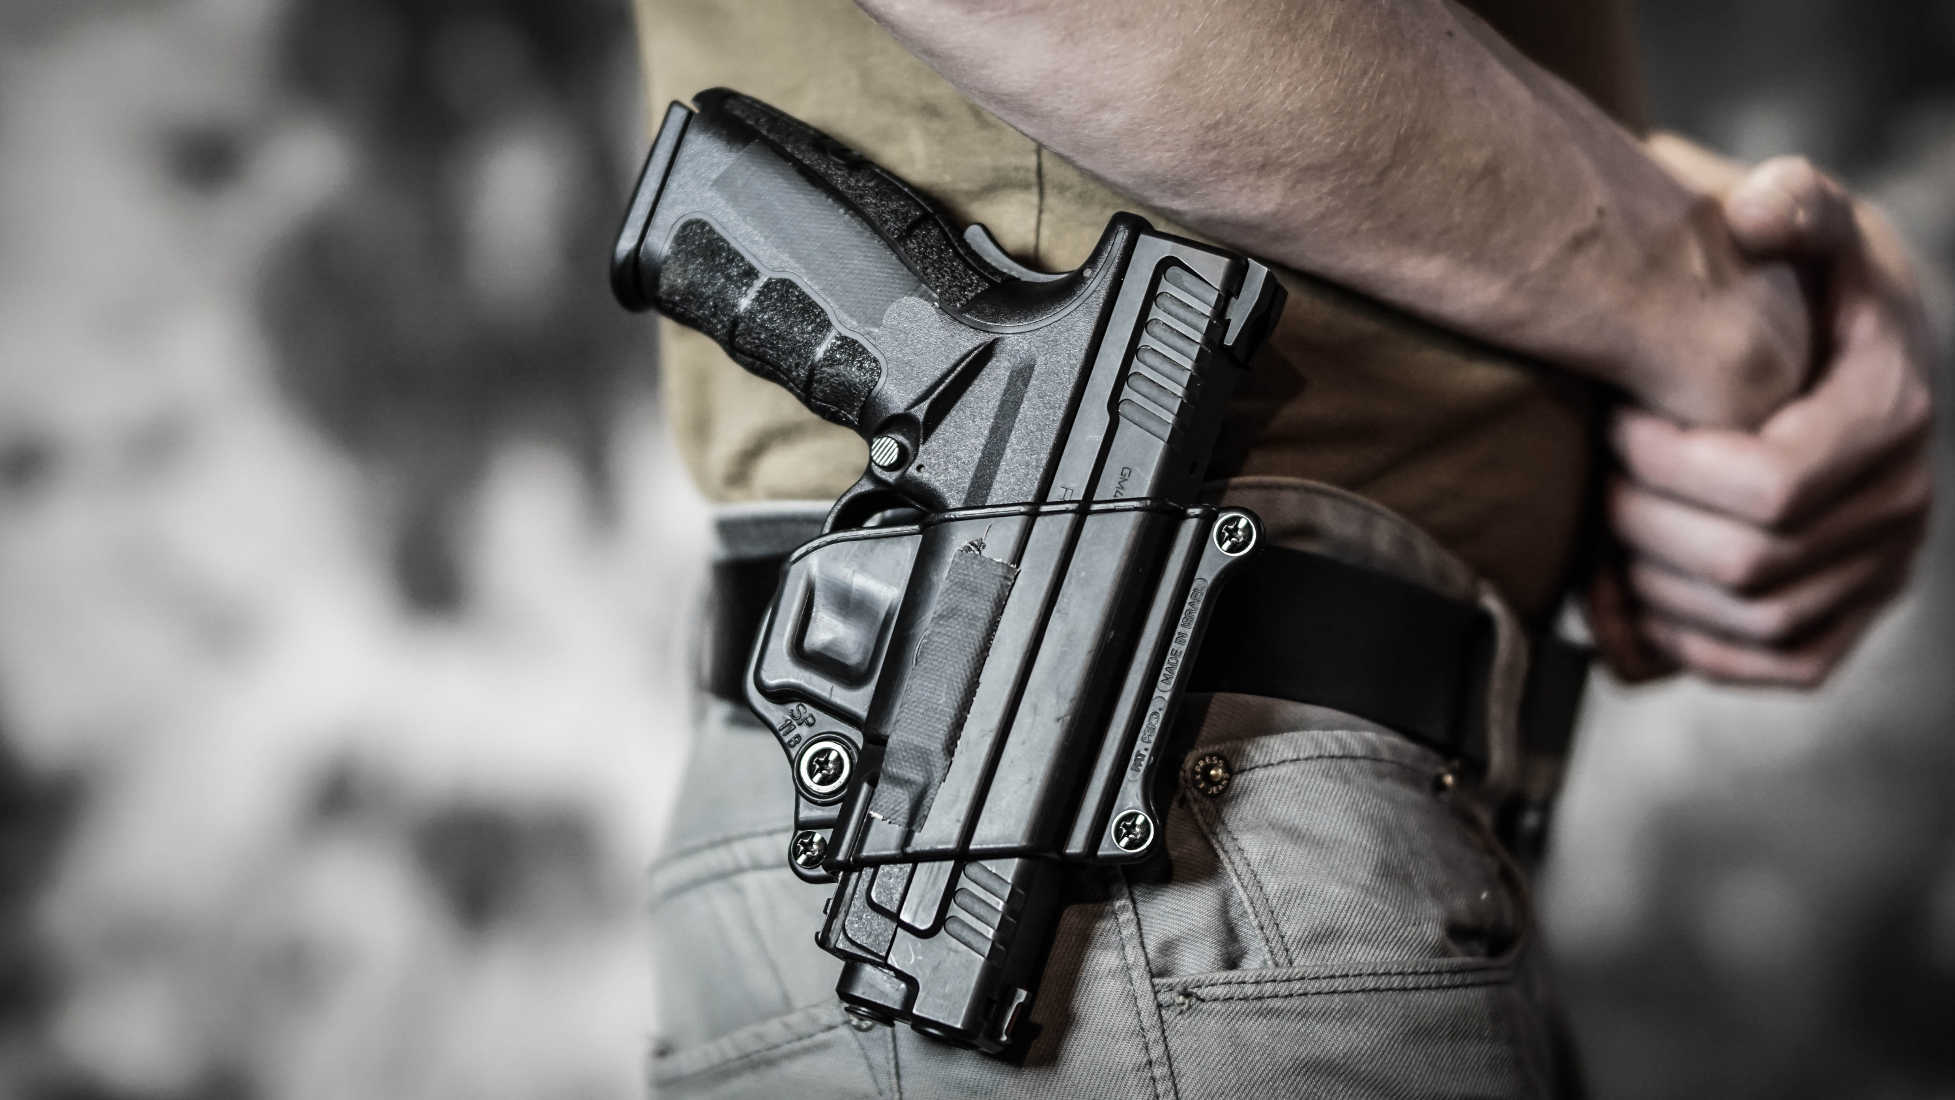 Judge: Michigan Voters Will Be Able to Open Carry at Polling Places